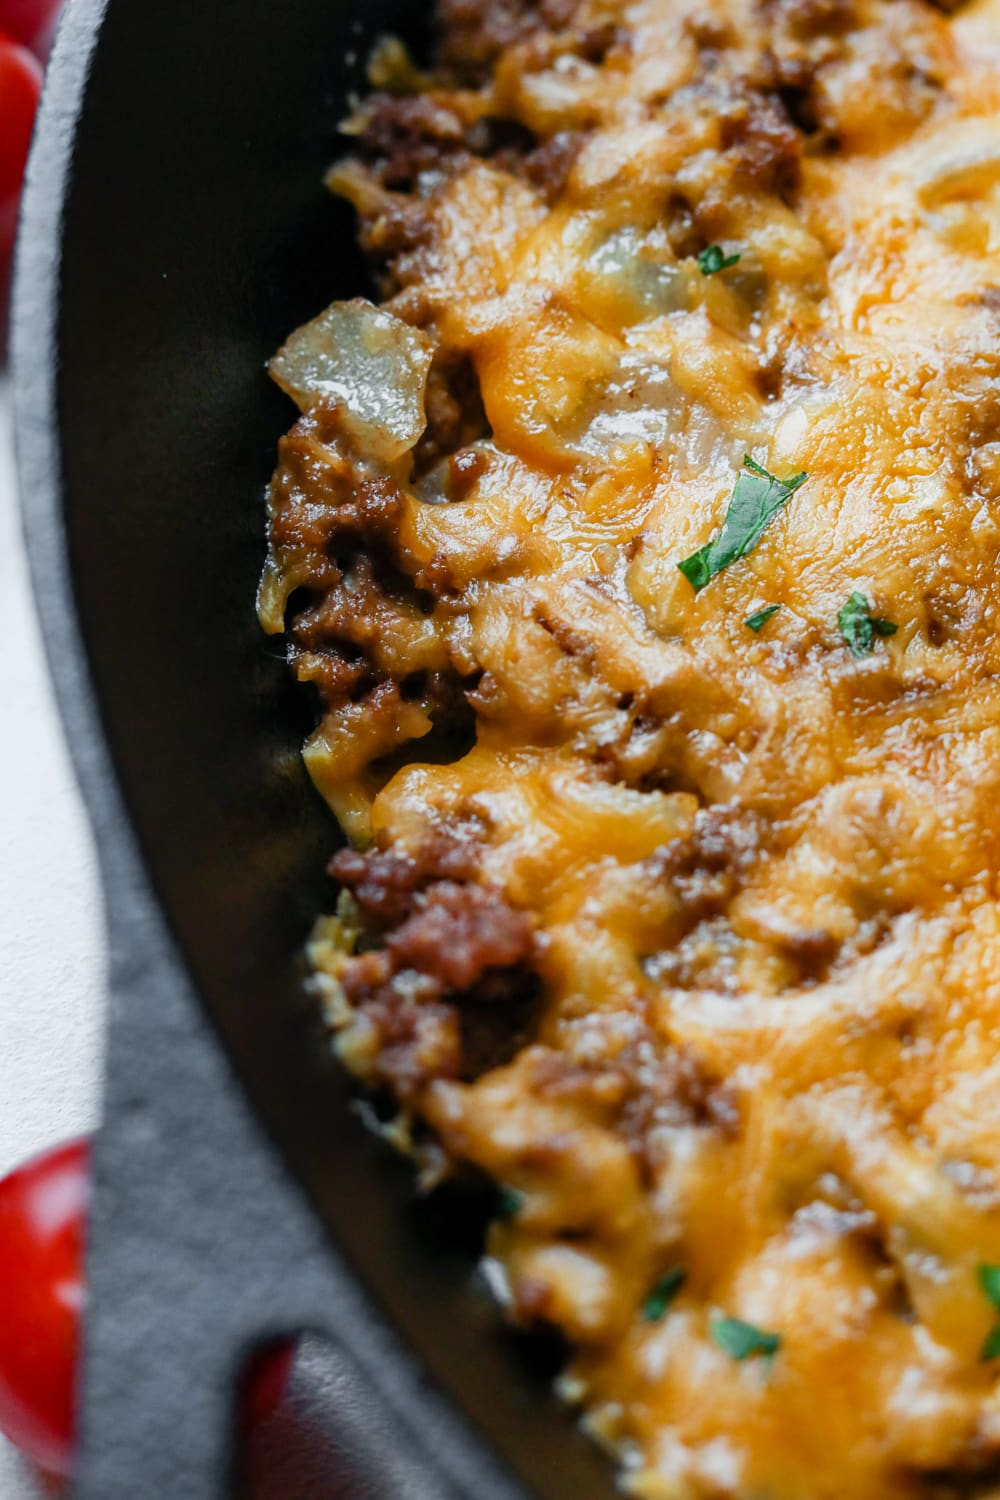 The edge of a pan with filled with ground beef, onions, and topped with cheddar cheese and chives.